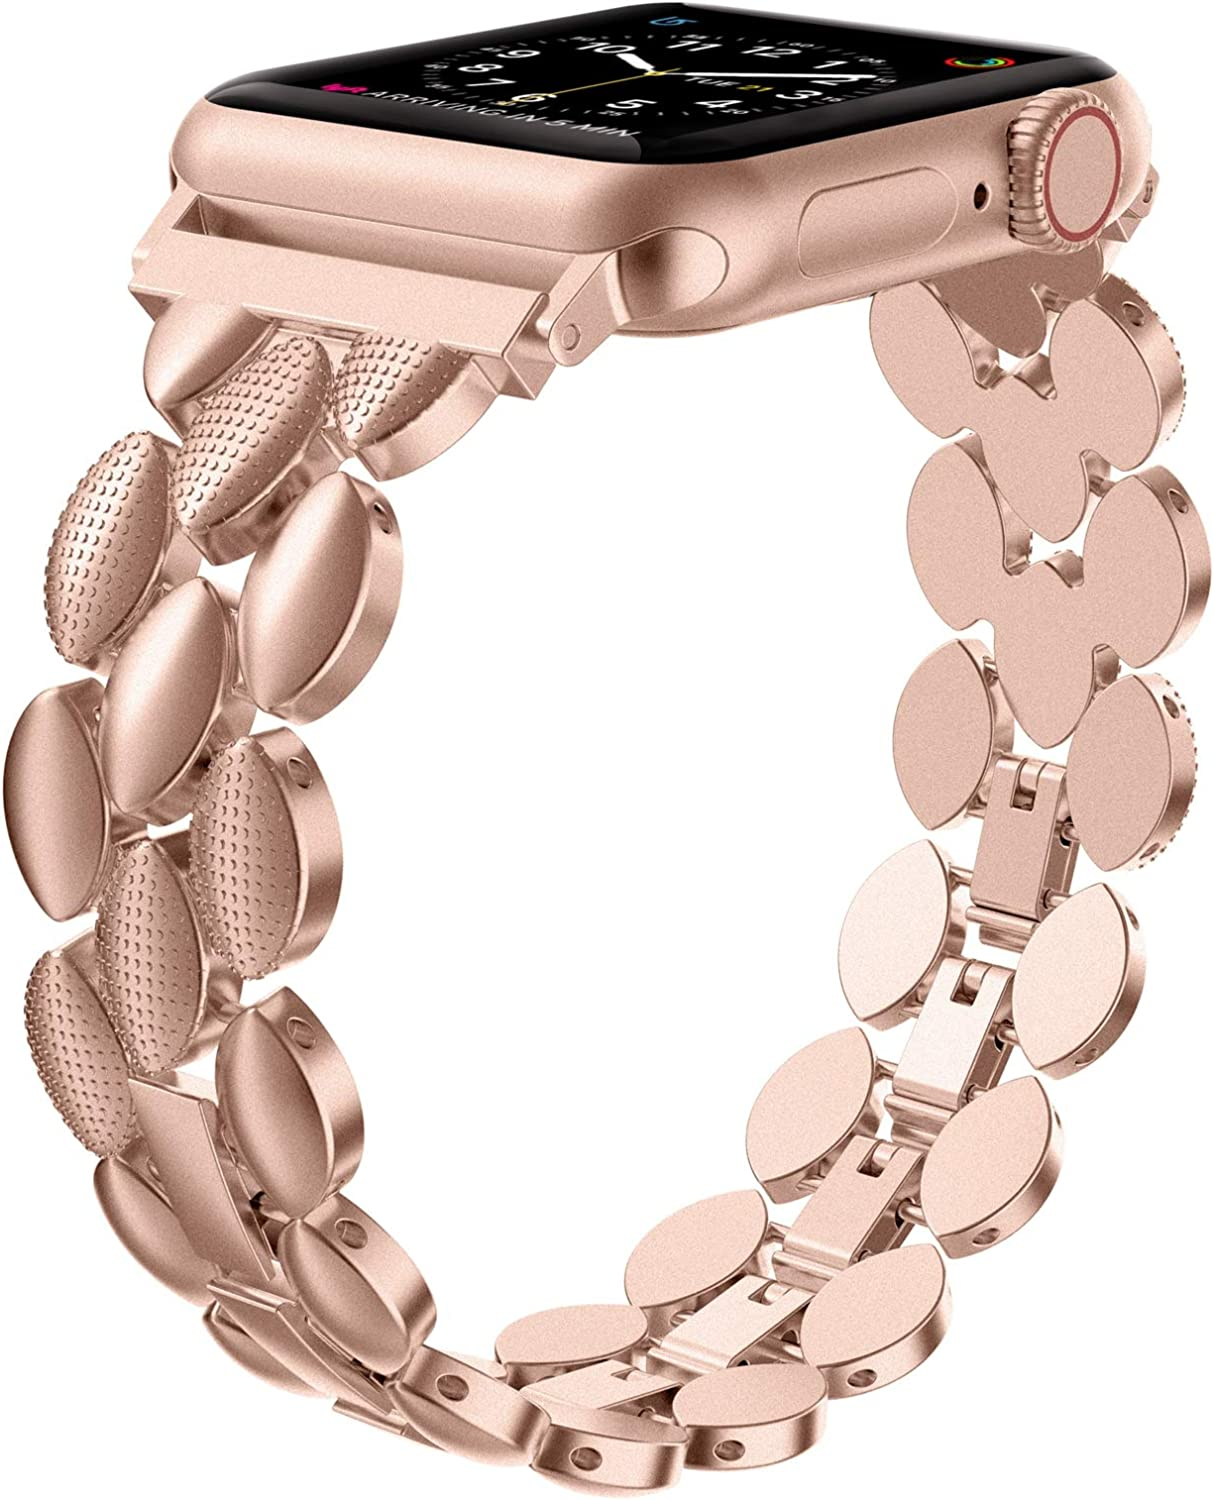 Moolia Compatible with Apple Watch Band 38mm 40mm Metal Fashion Women Replacement Strap Bracelet for iWatch SE Series 6 5 4 3 2 1,Gold Series 3 (Match Series 5 & 4 & 3)